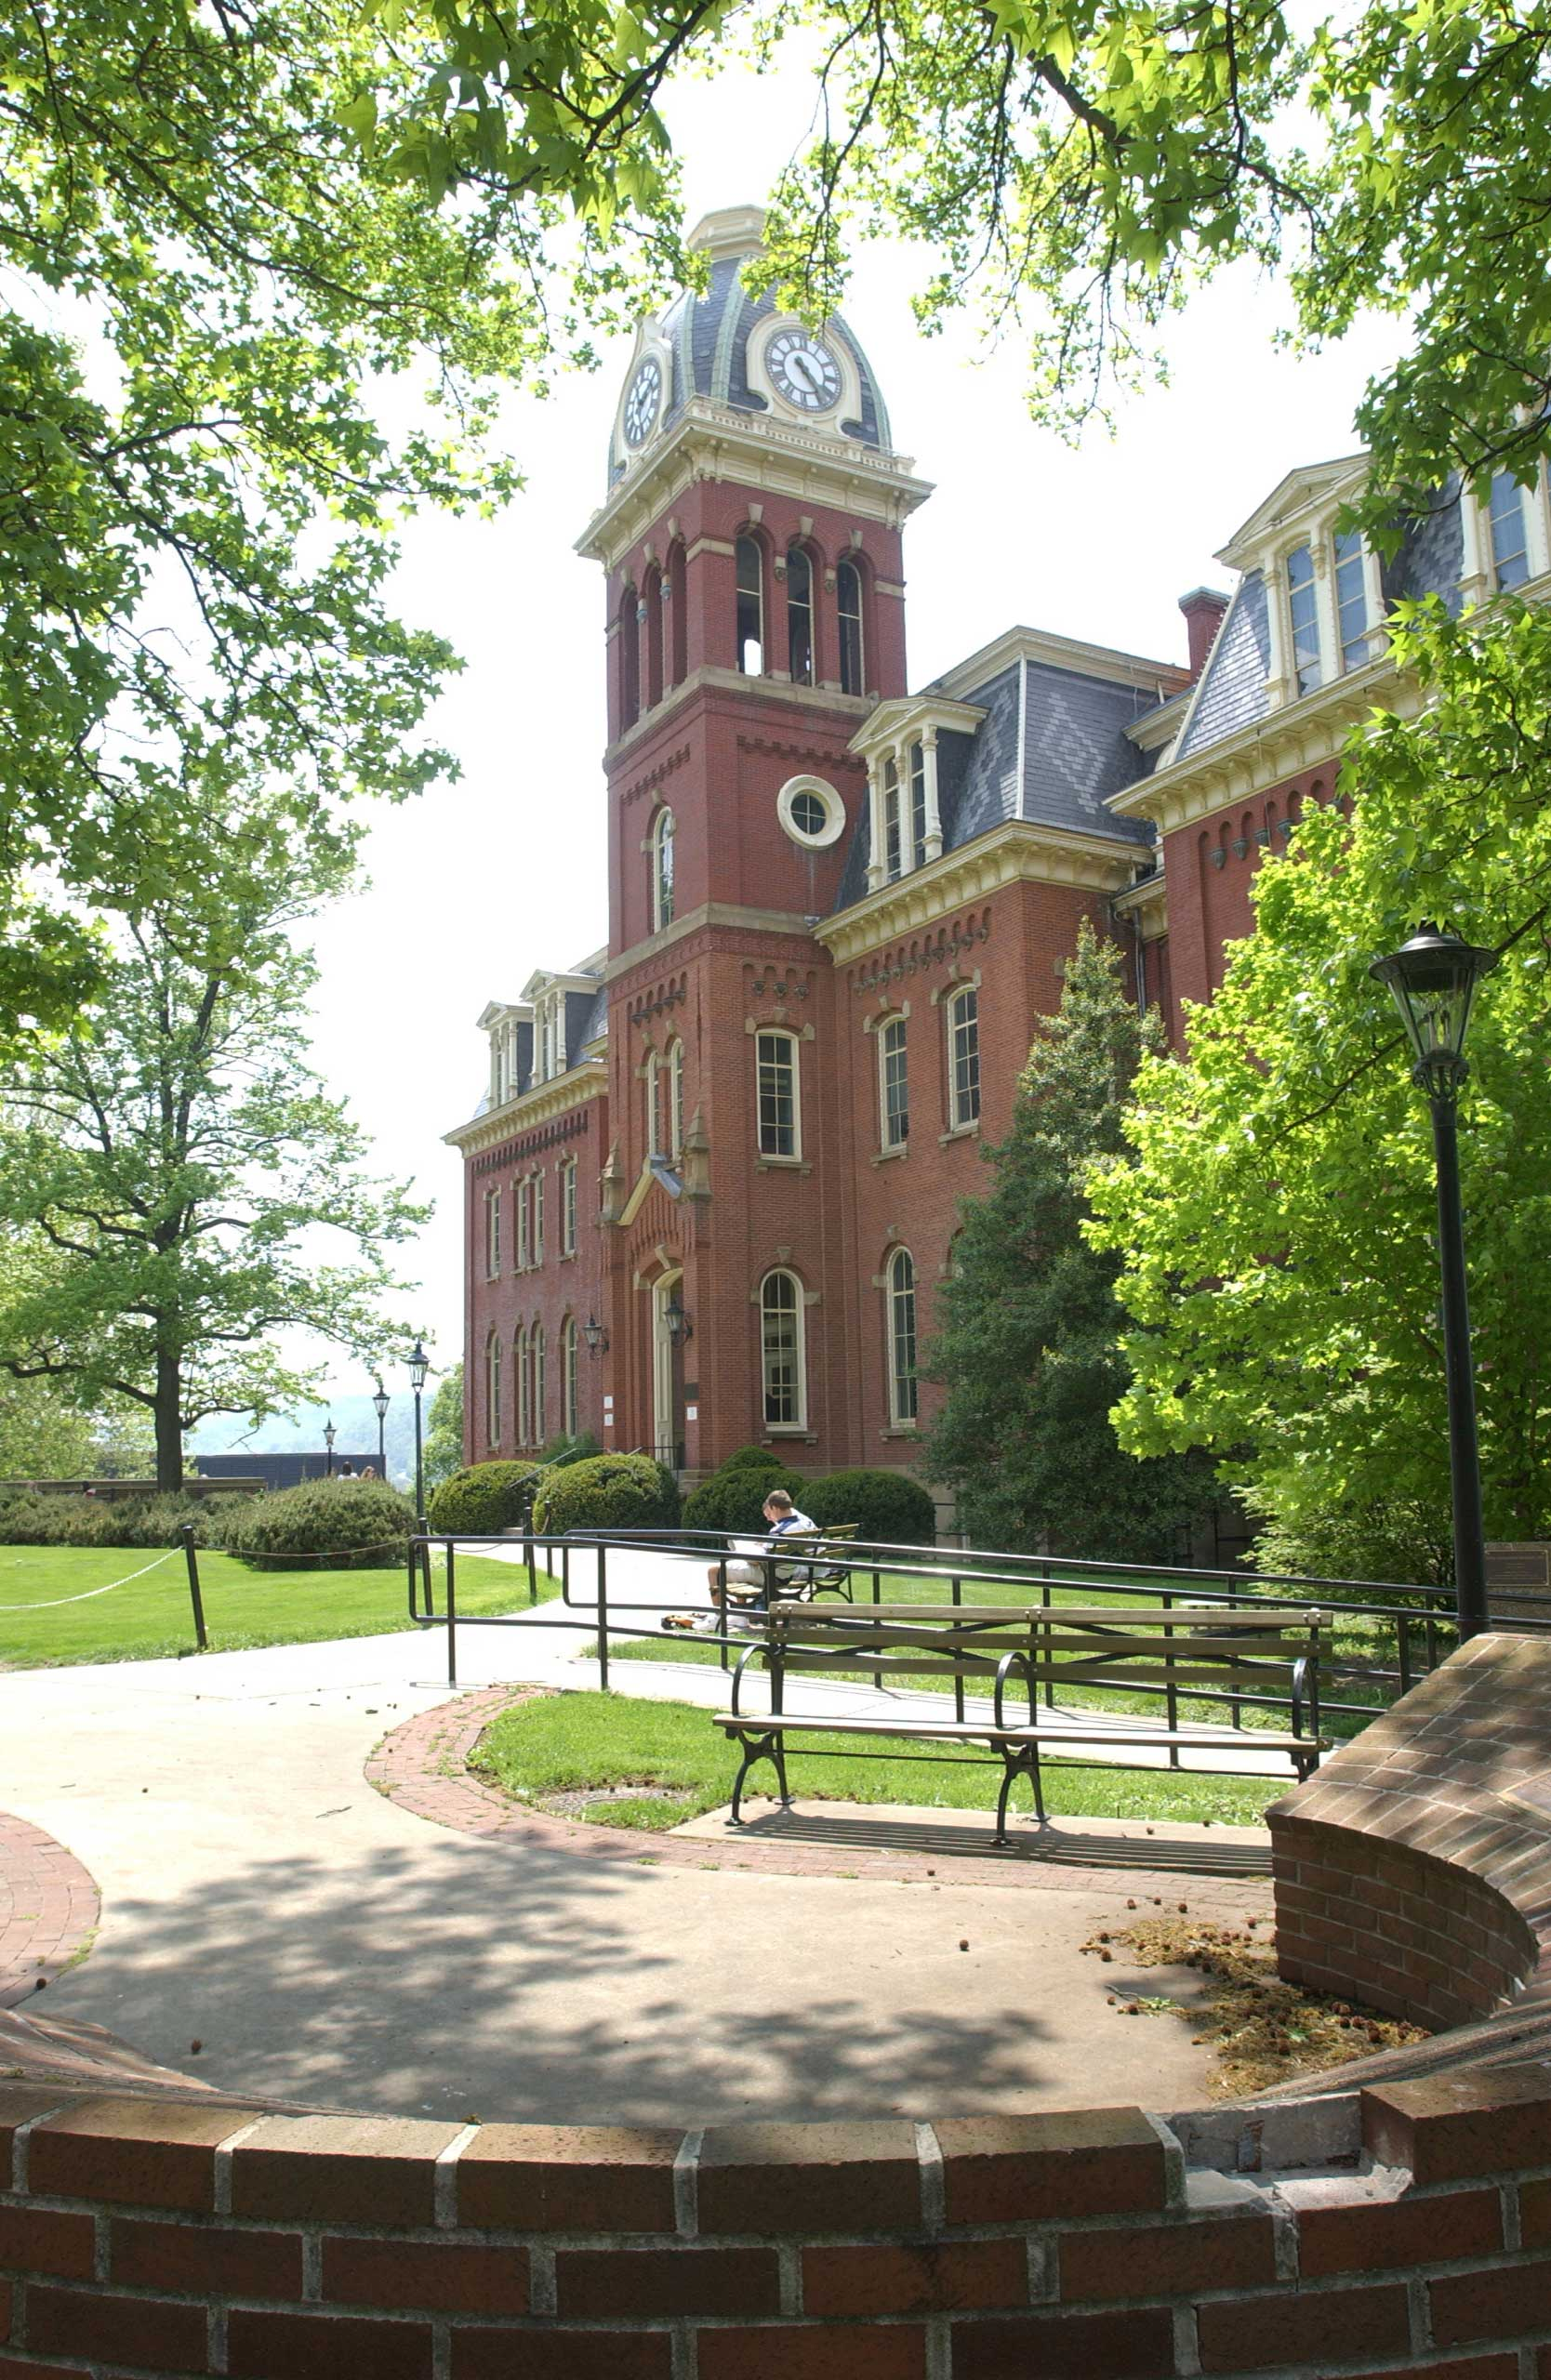 General view of the Woodburn Hall on the campus of the West Virginia University Mountaineers circa 2011 in Morgantown, West Virginia.